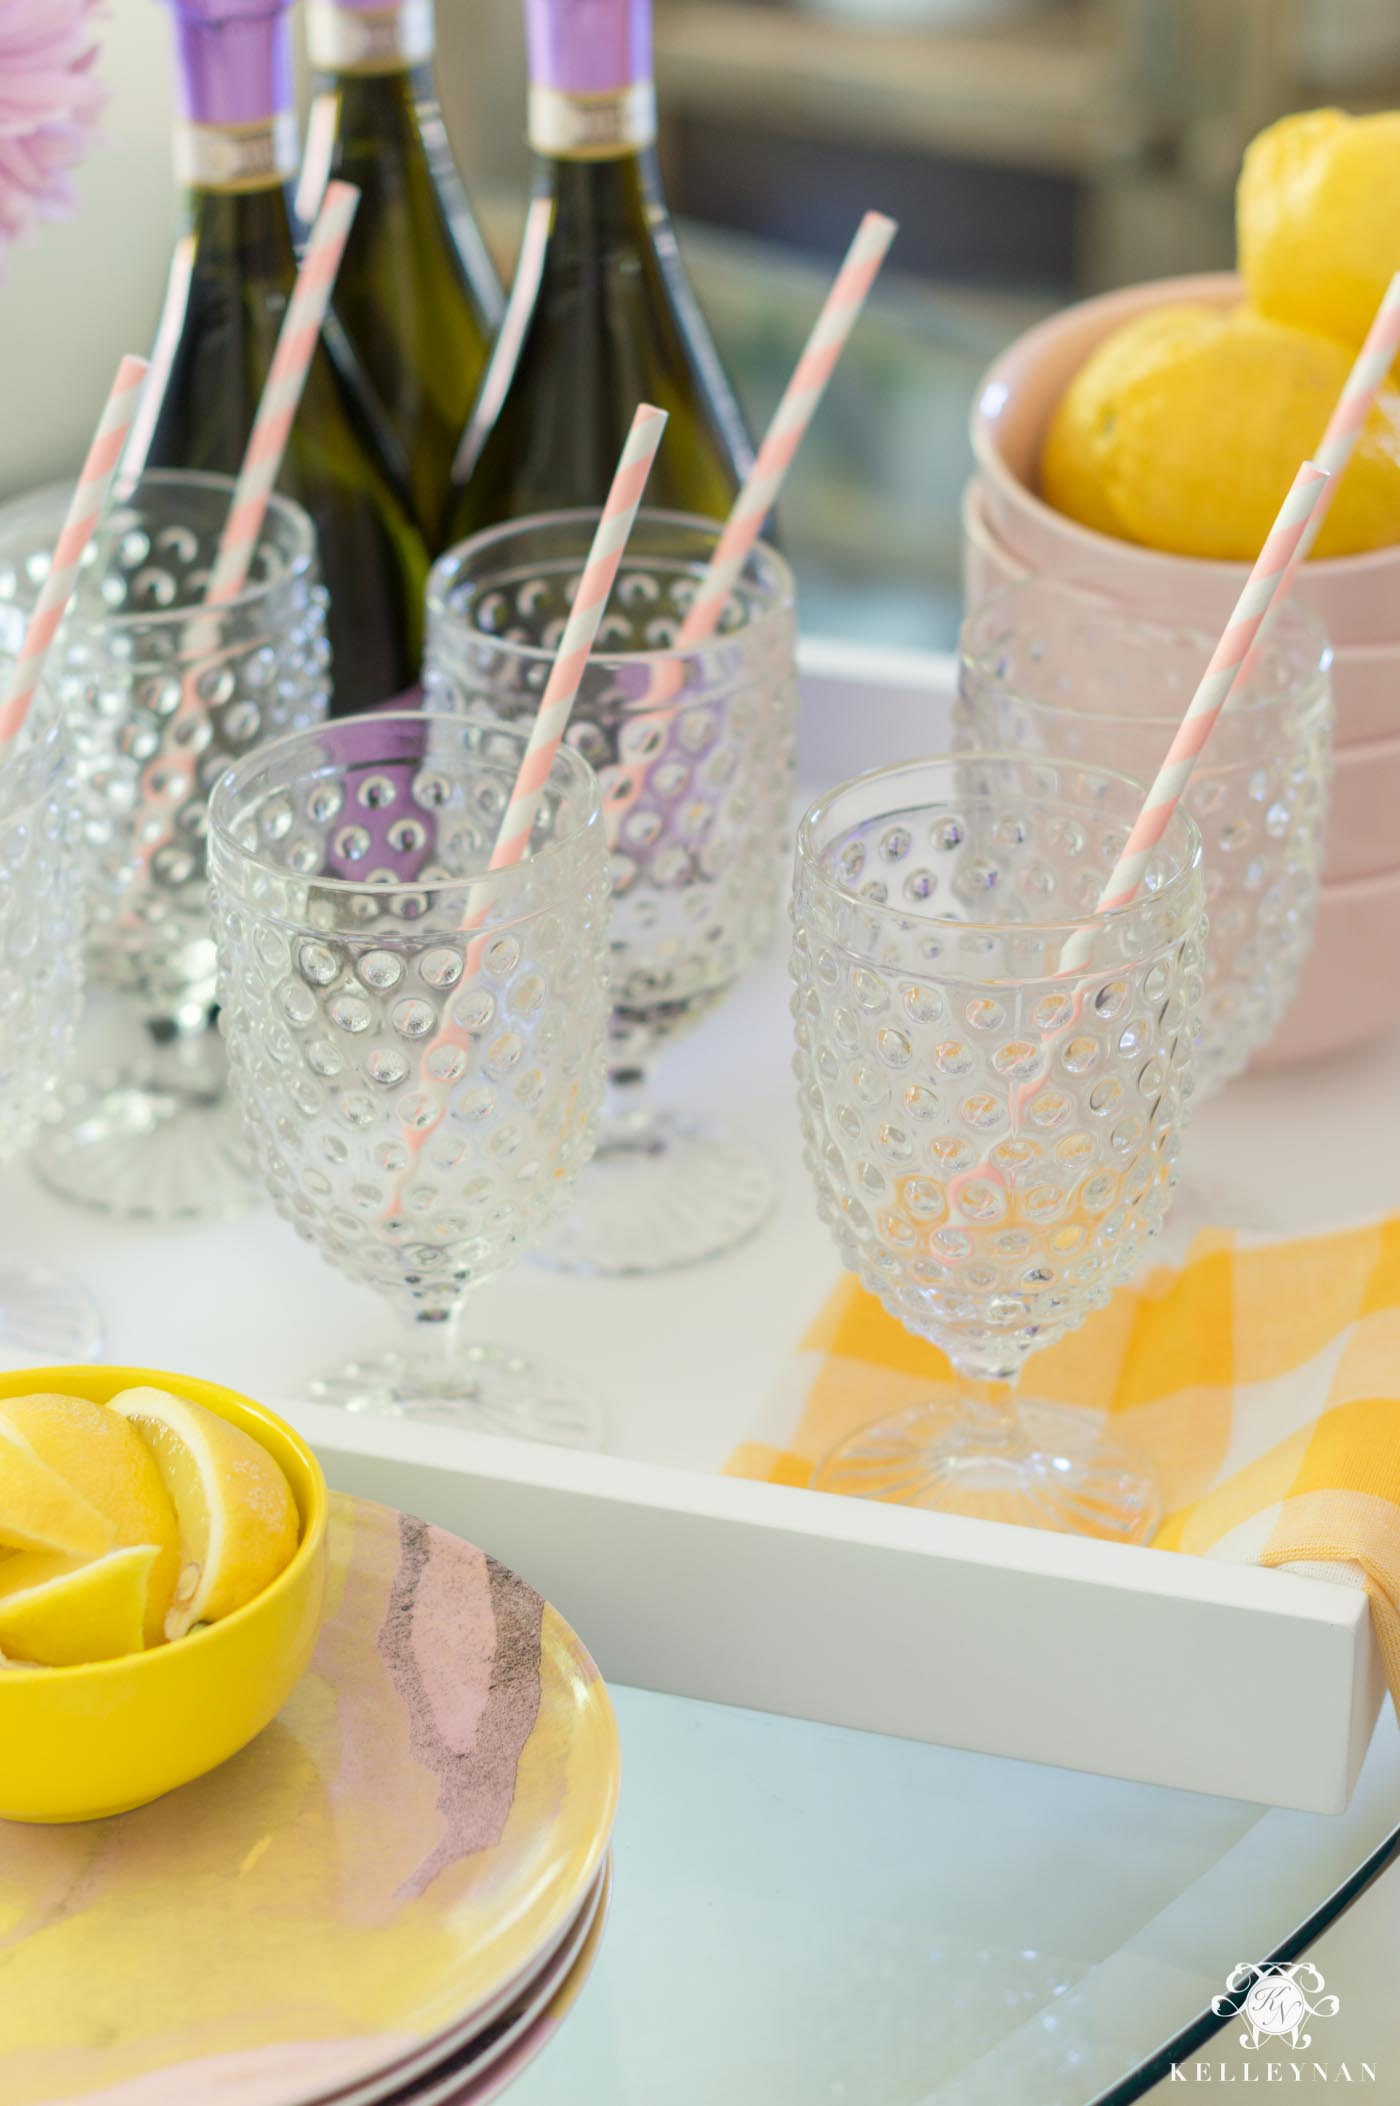 Summer entertaining with a lemon theme